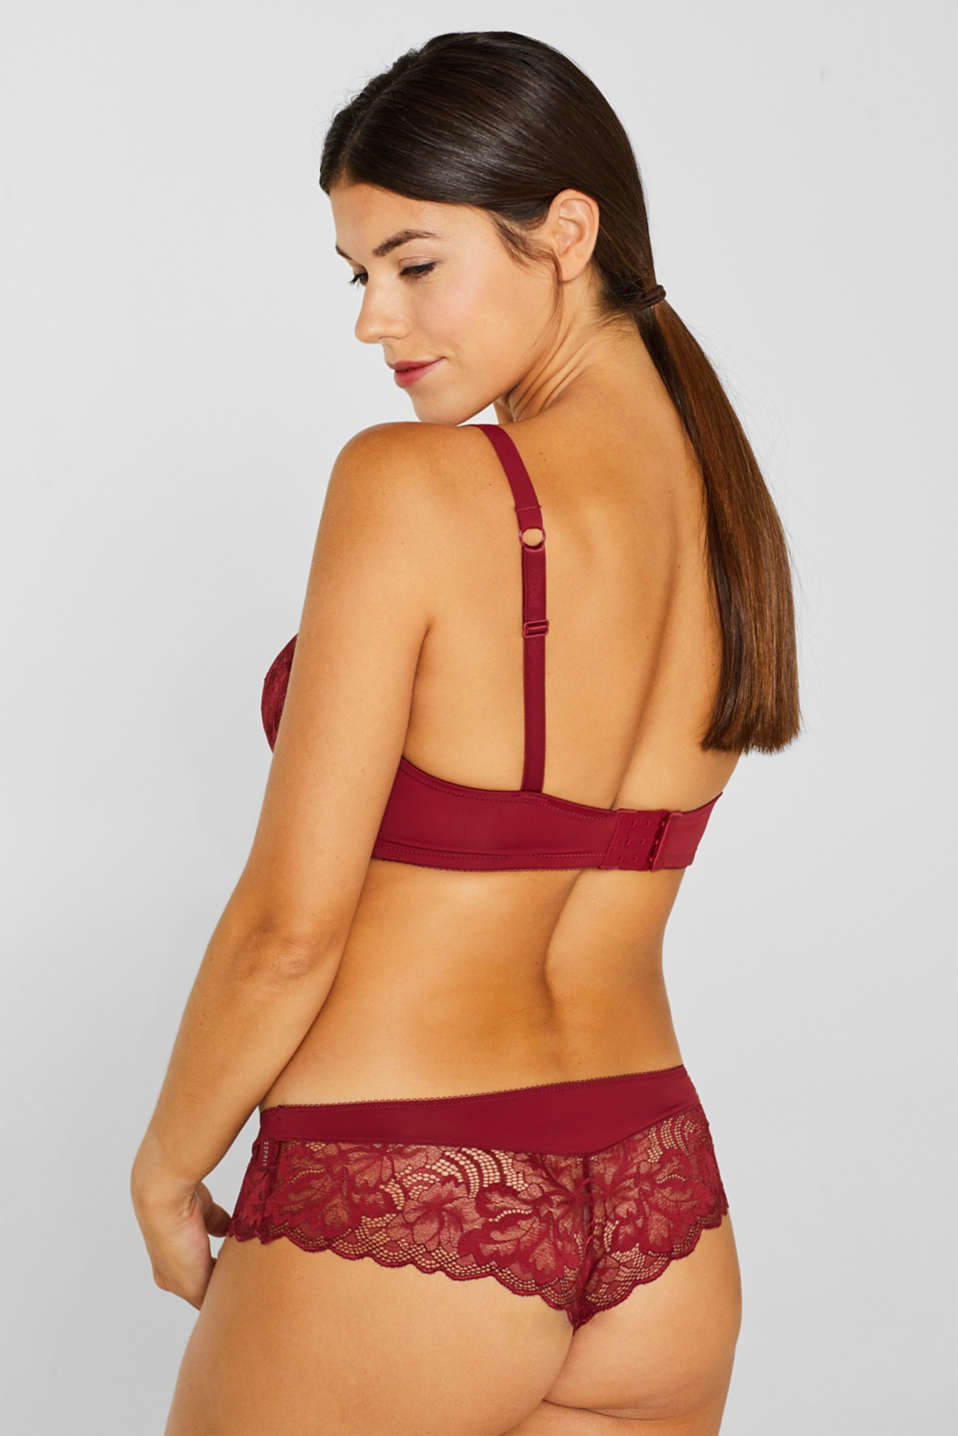 Padded, non-wired lace bra for large cup sizes, DARK RED, detail image number 1